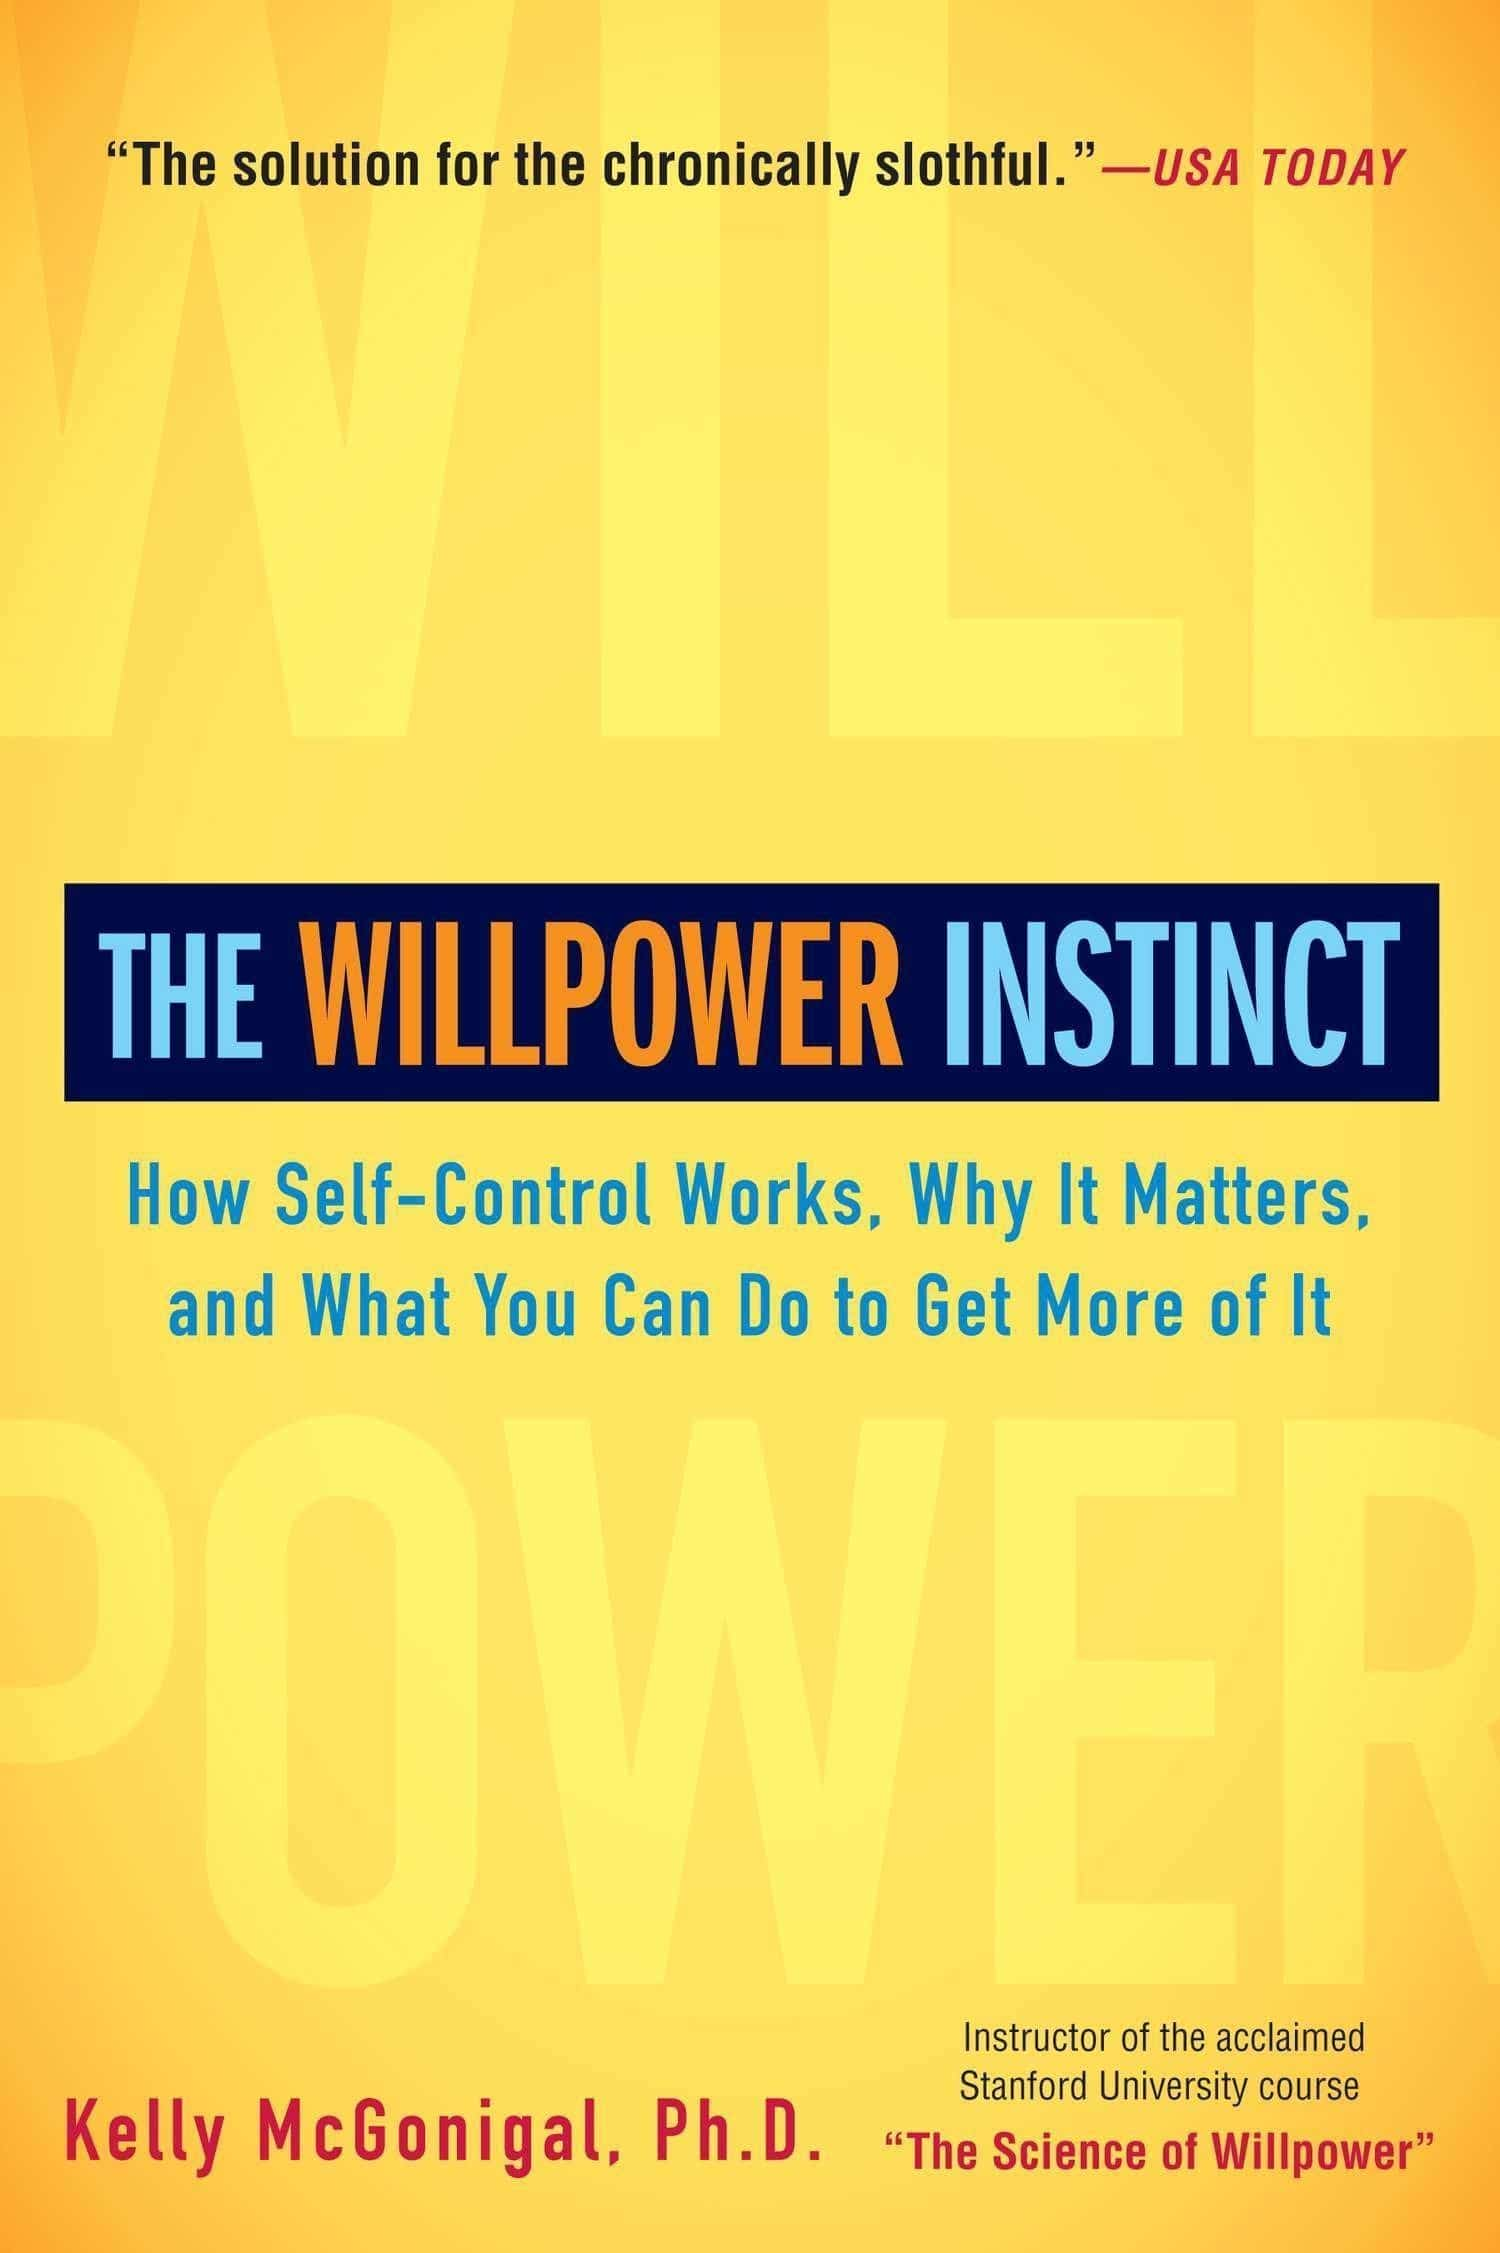 The_willpower_instinct